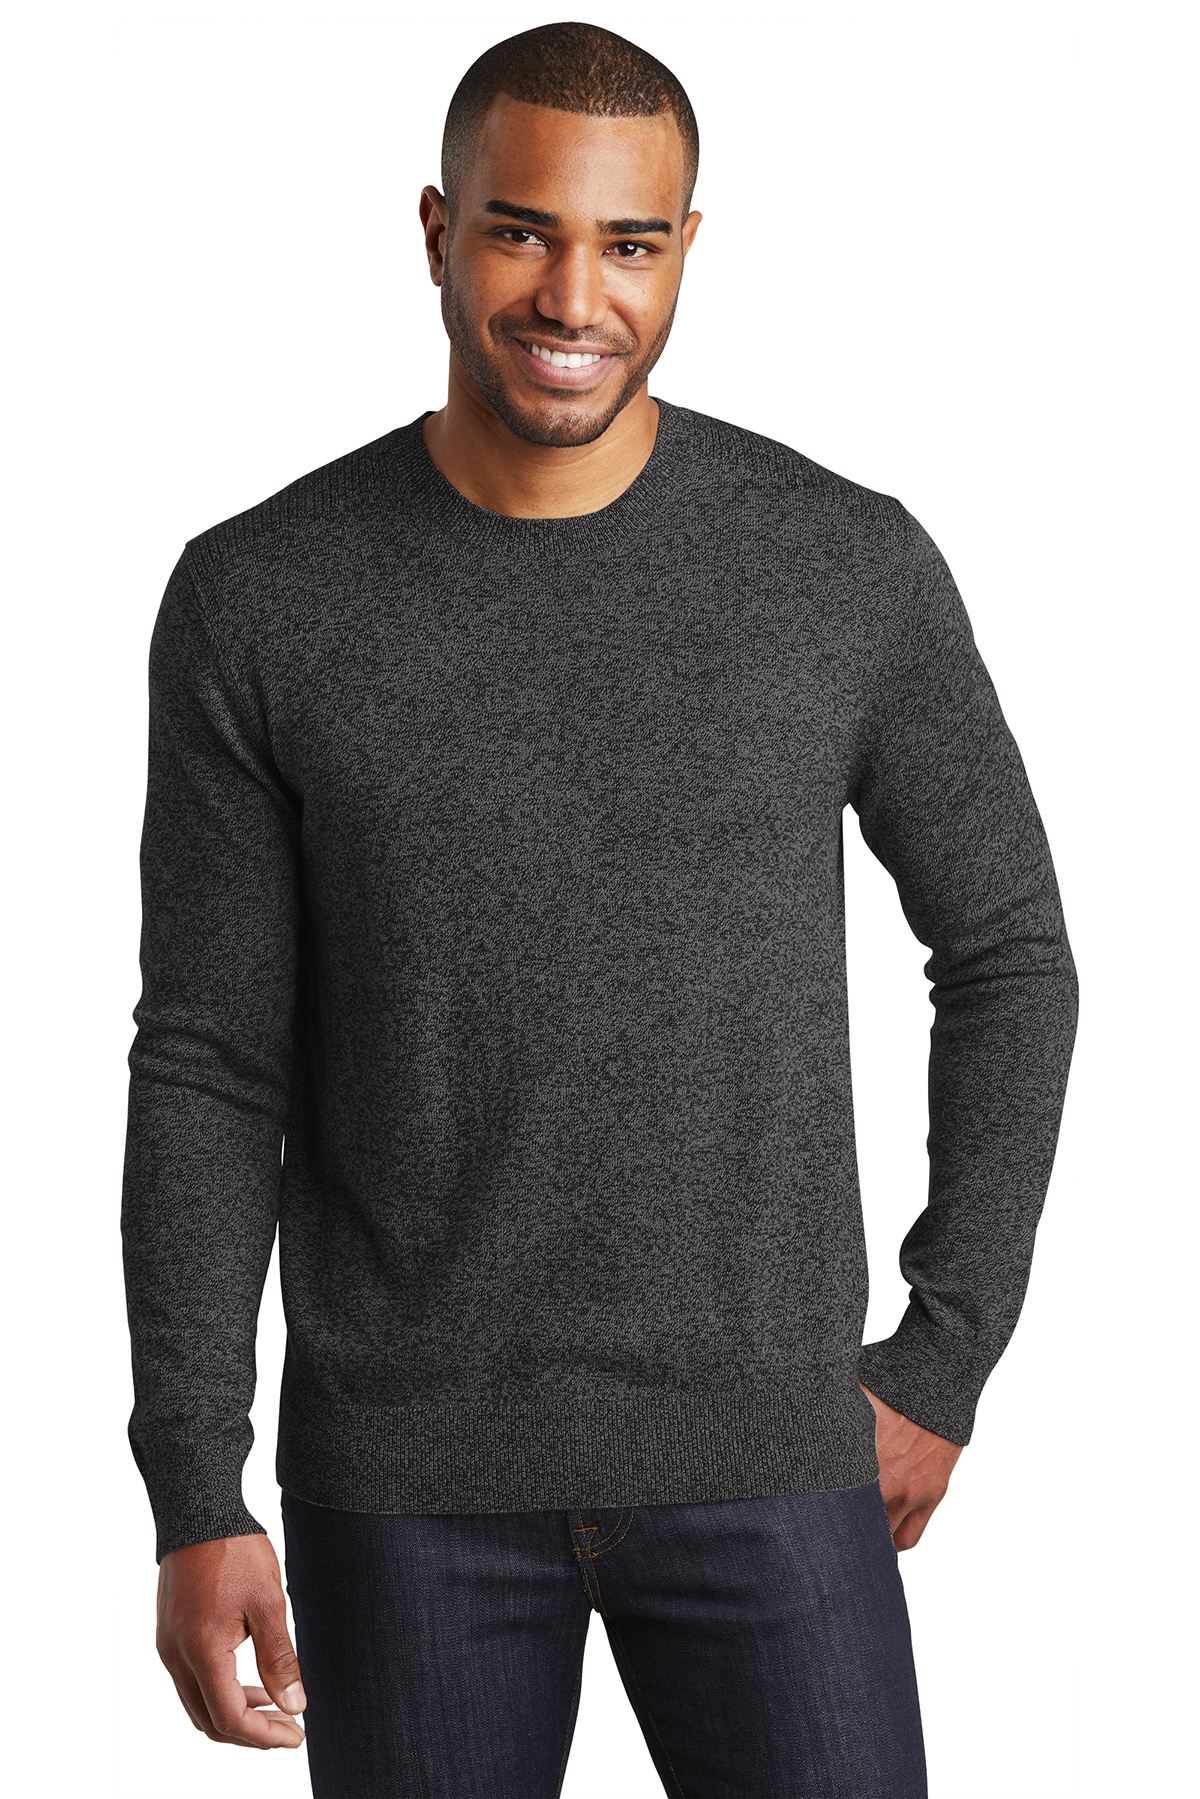 Port Authority SW417 - Men's Marled Crew Sweater